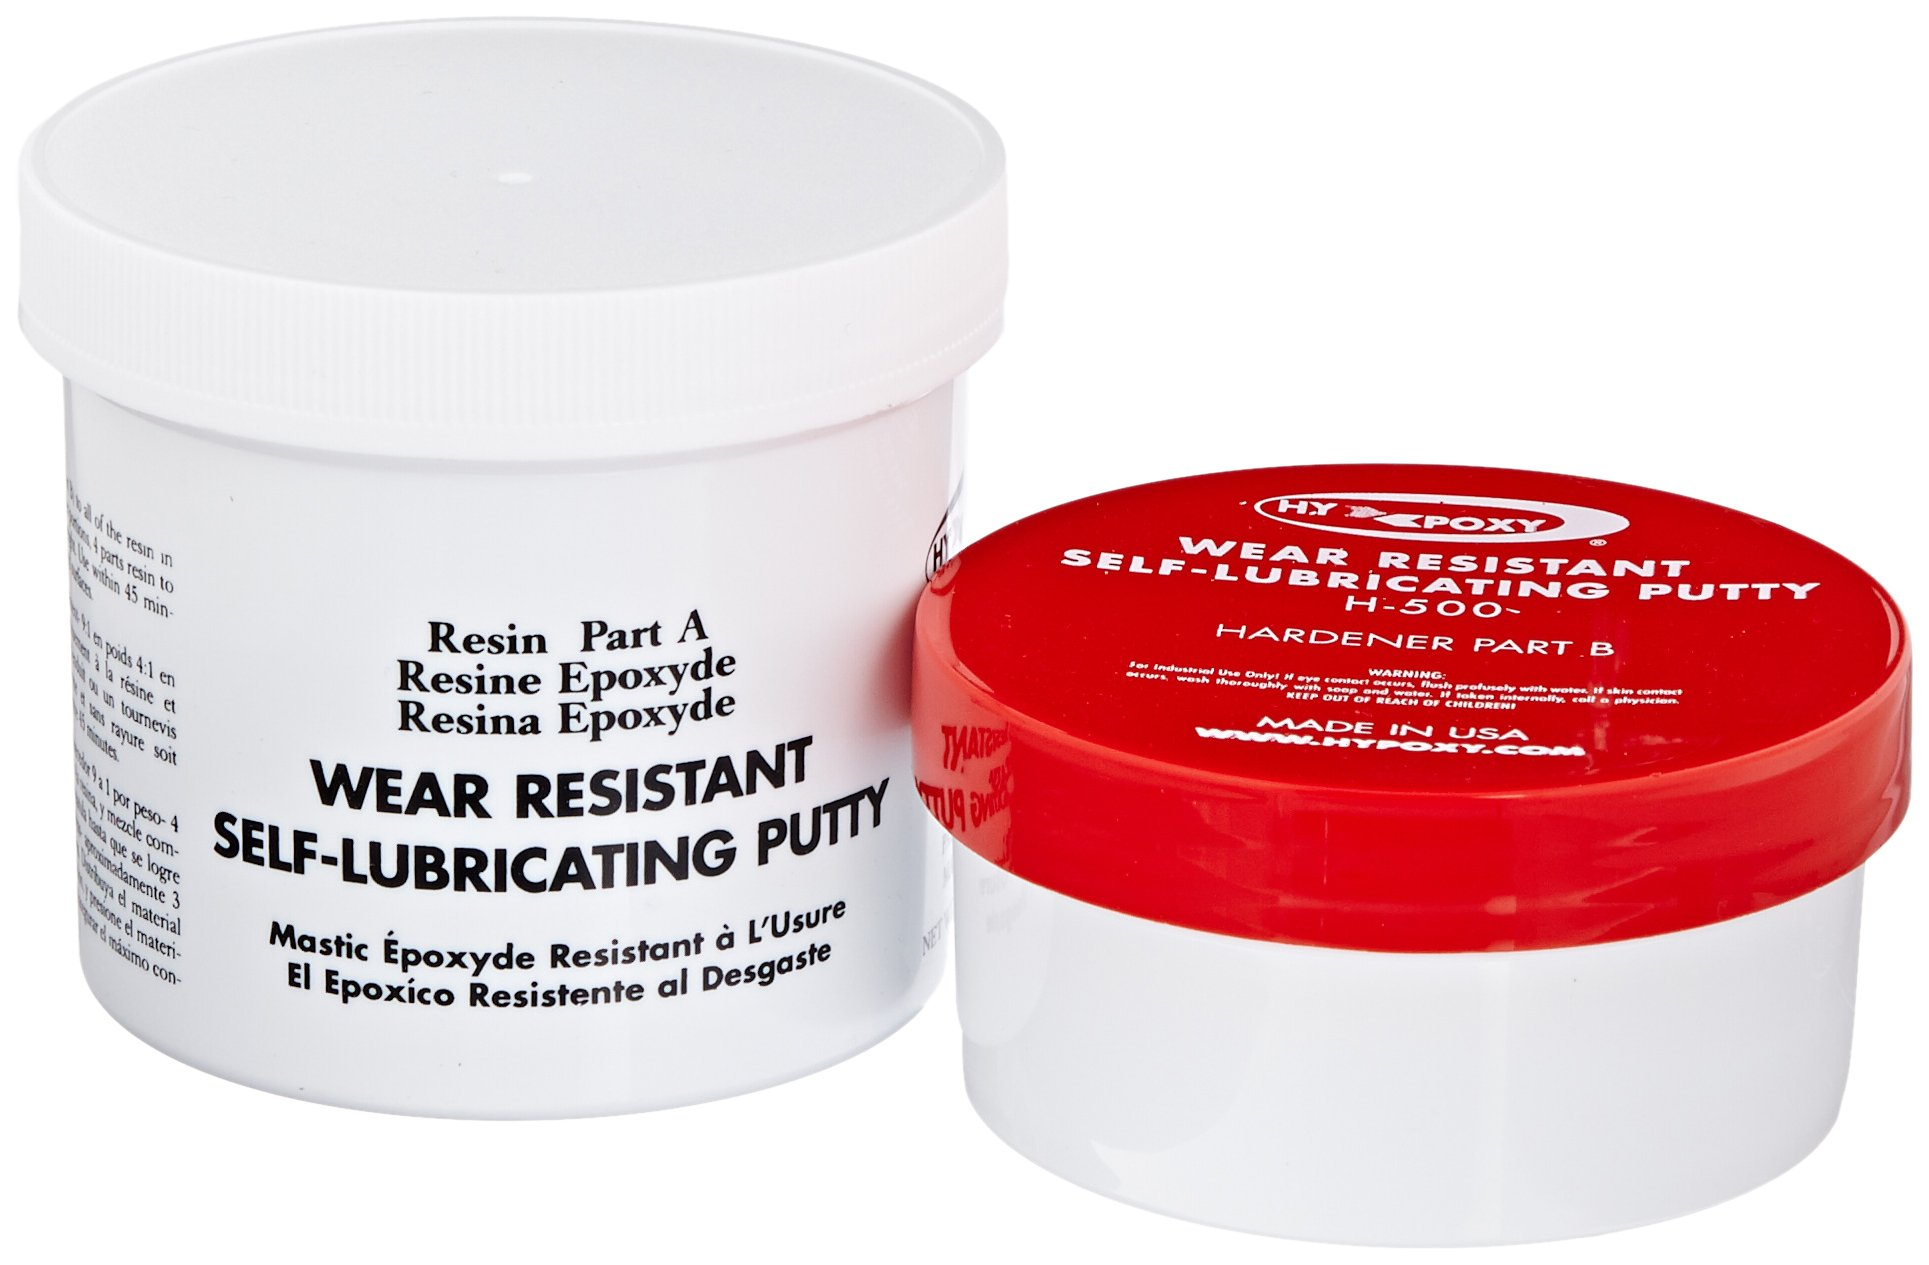 Hy-Poxy H-500 1 lbs Wear Resistant Epoxy Putty Repair Kit